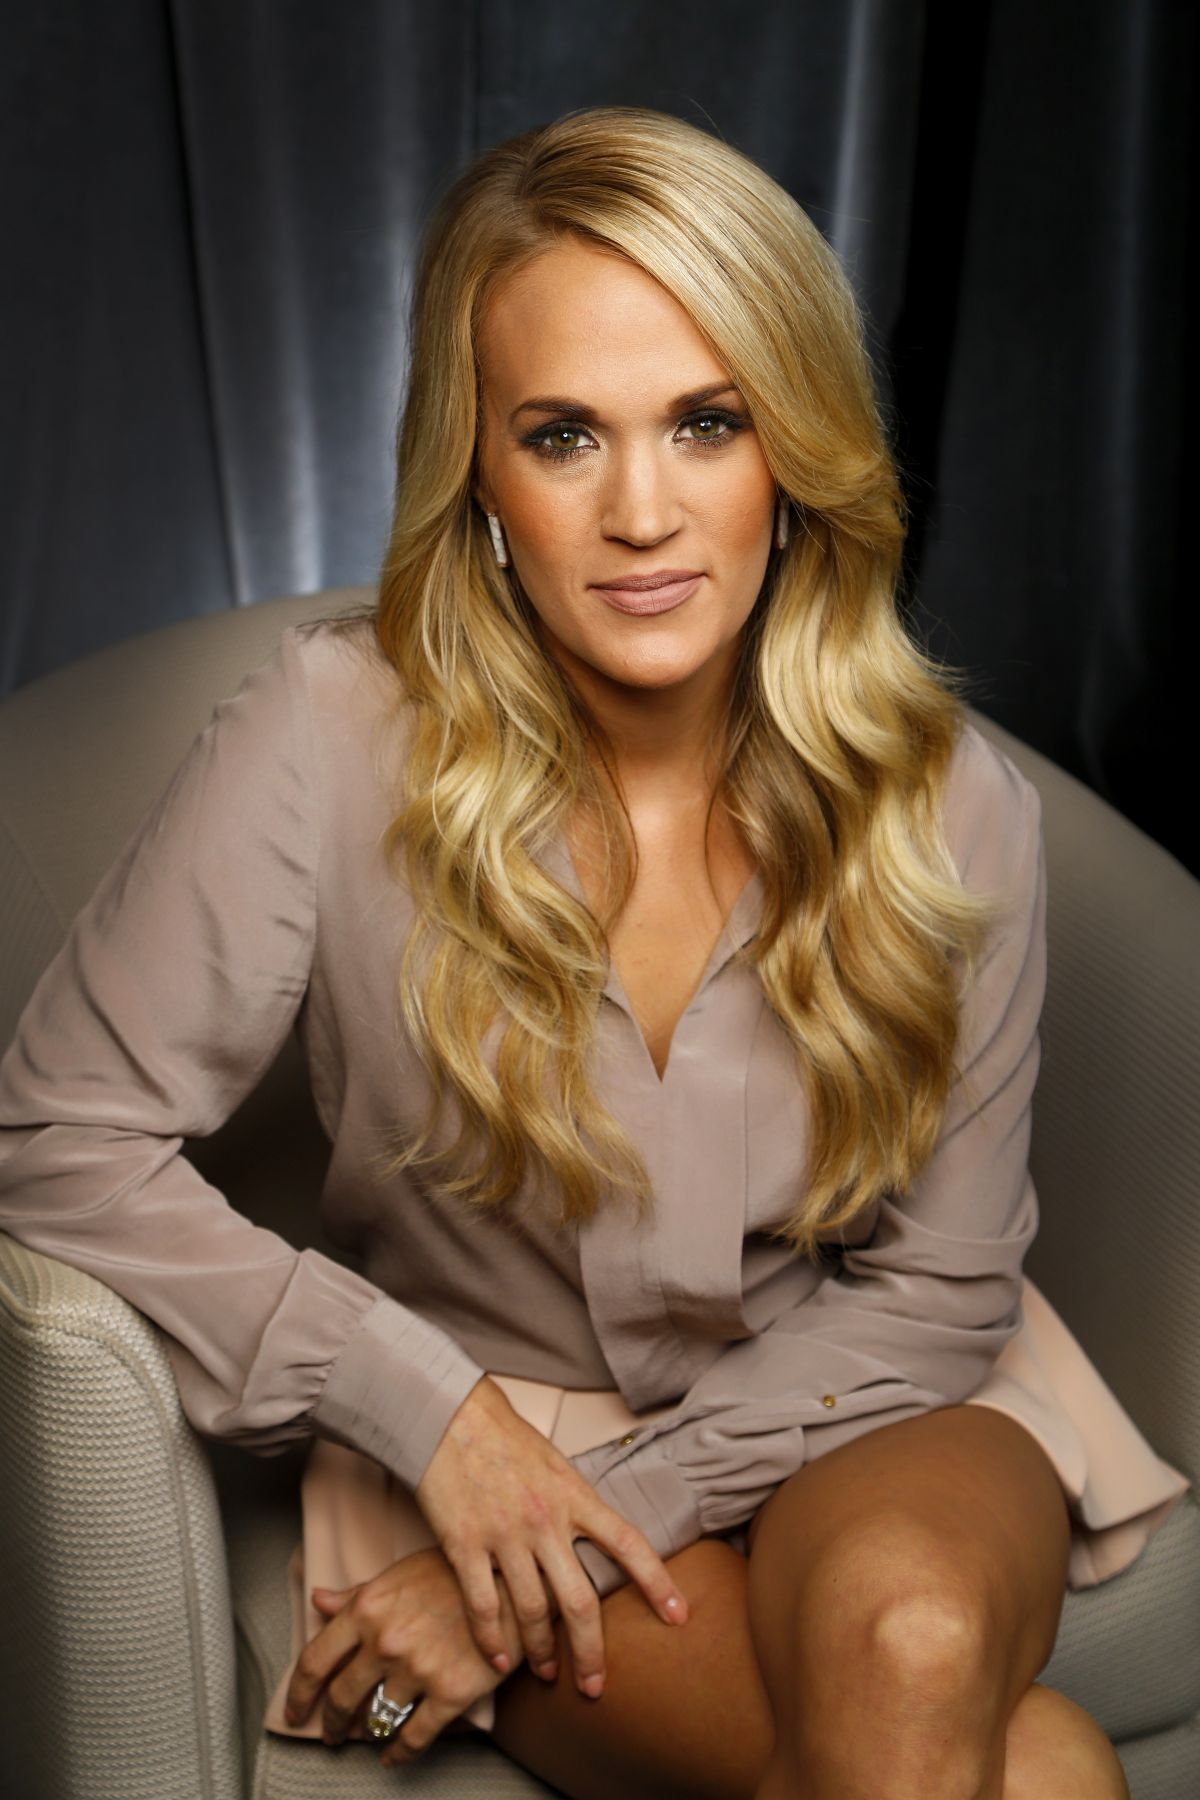 CARRIE UNDERWOOD by Donn Jones Portraits - HawtCelebs - HawtCelebs